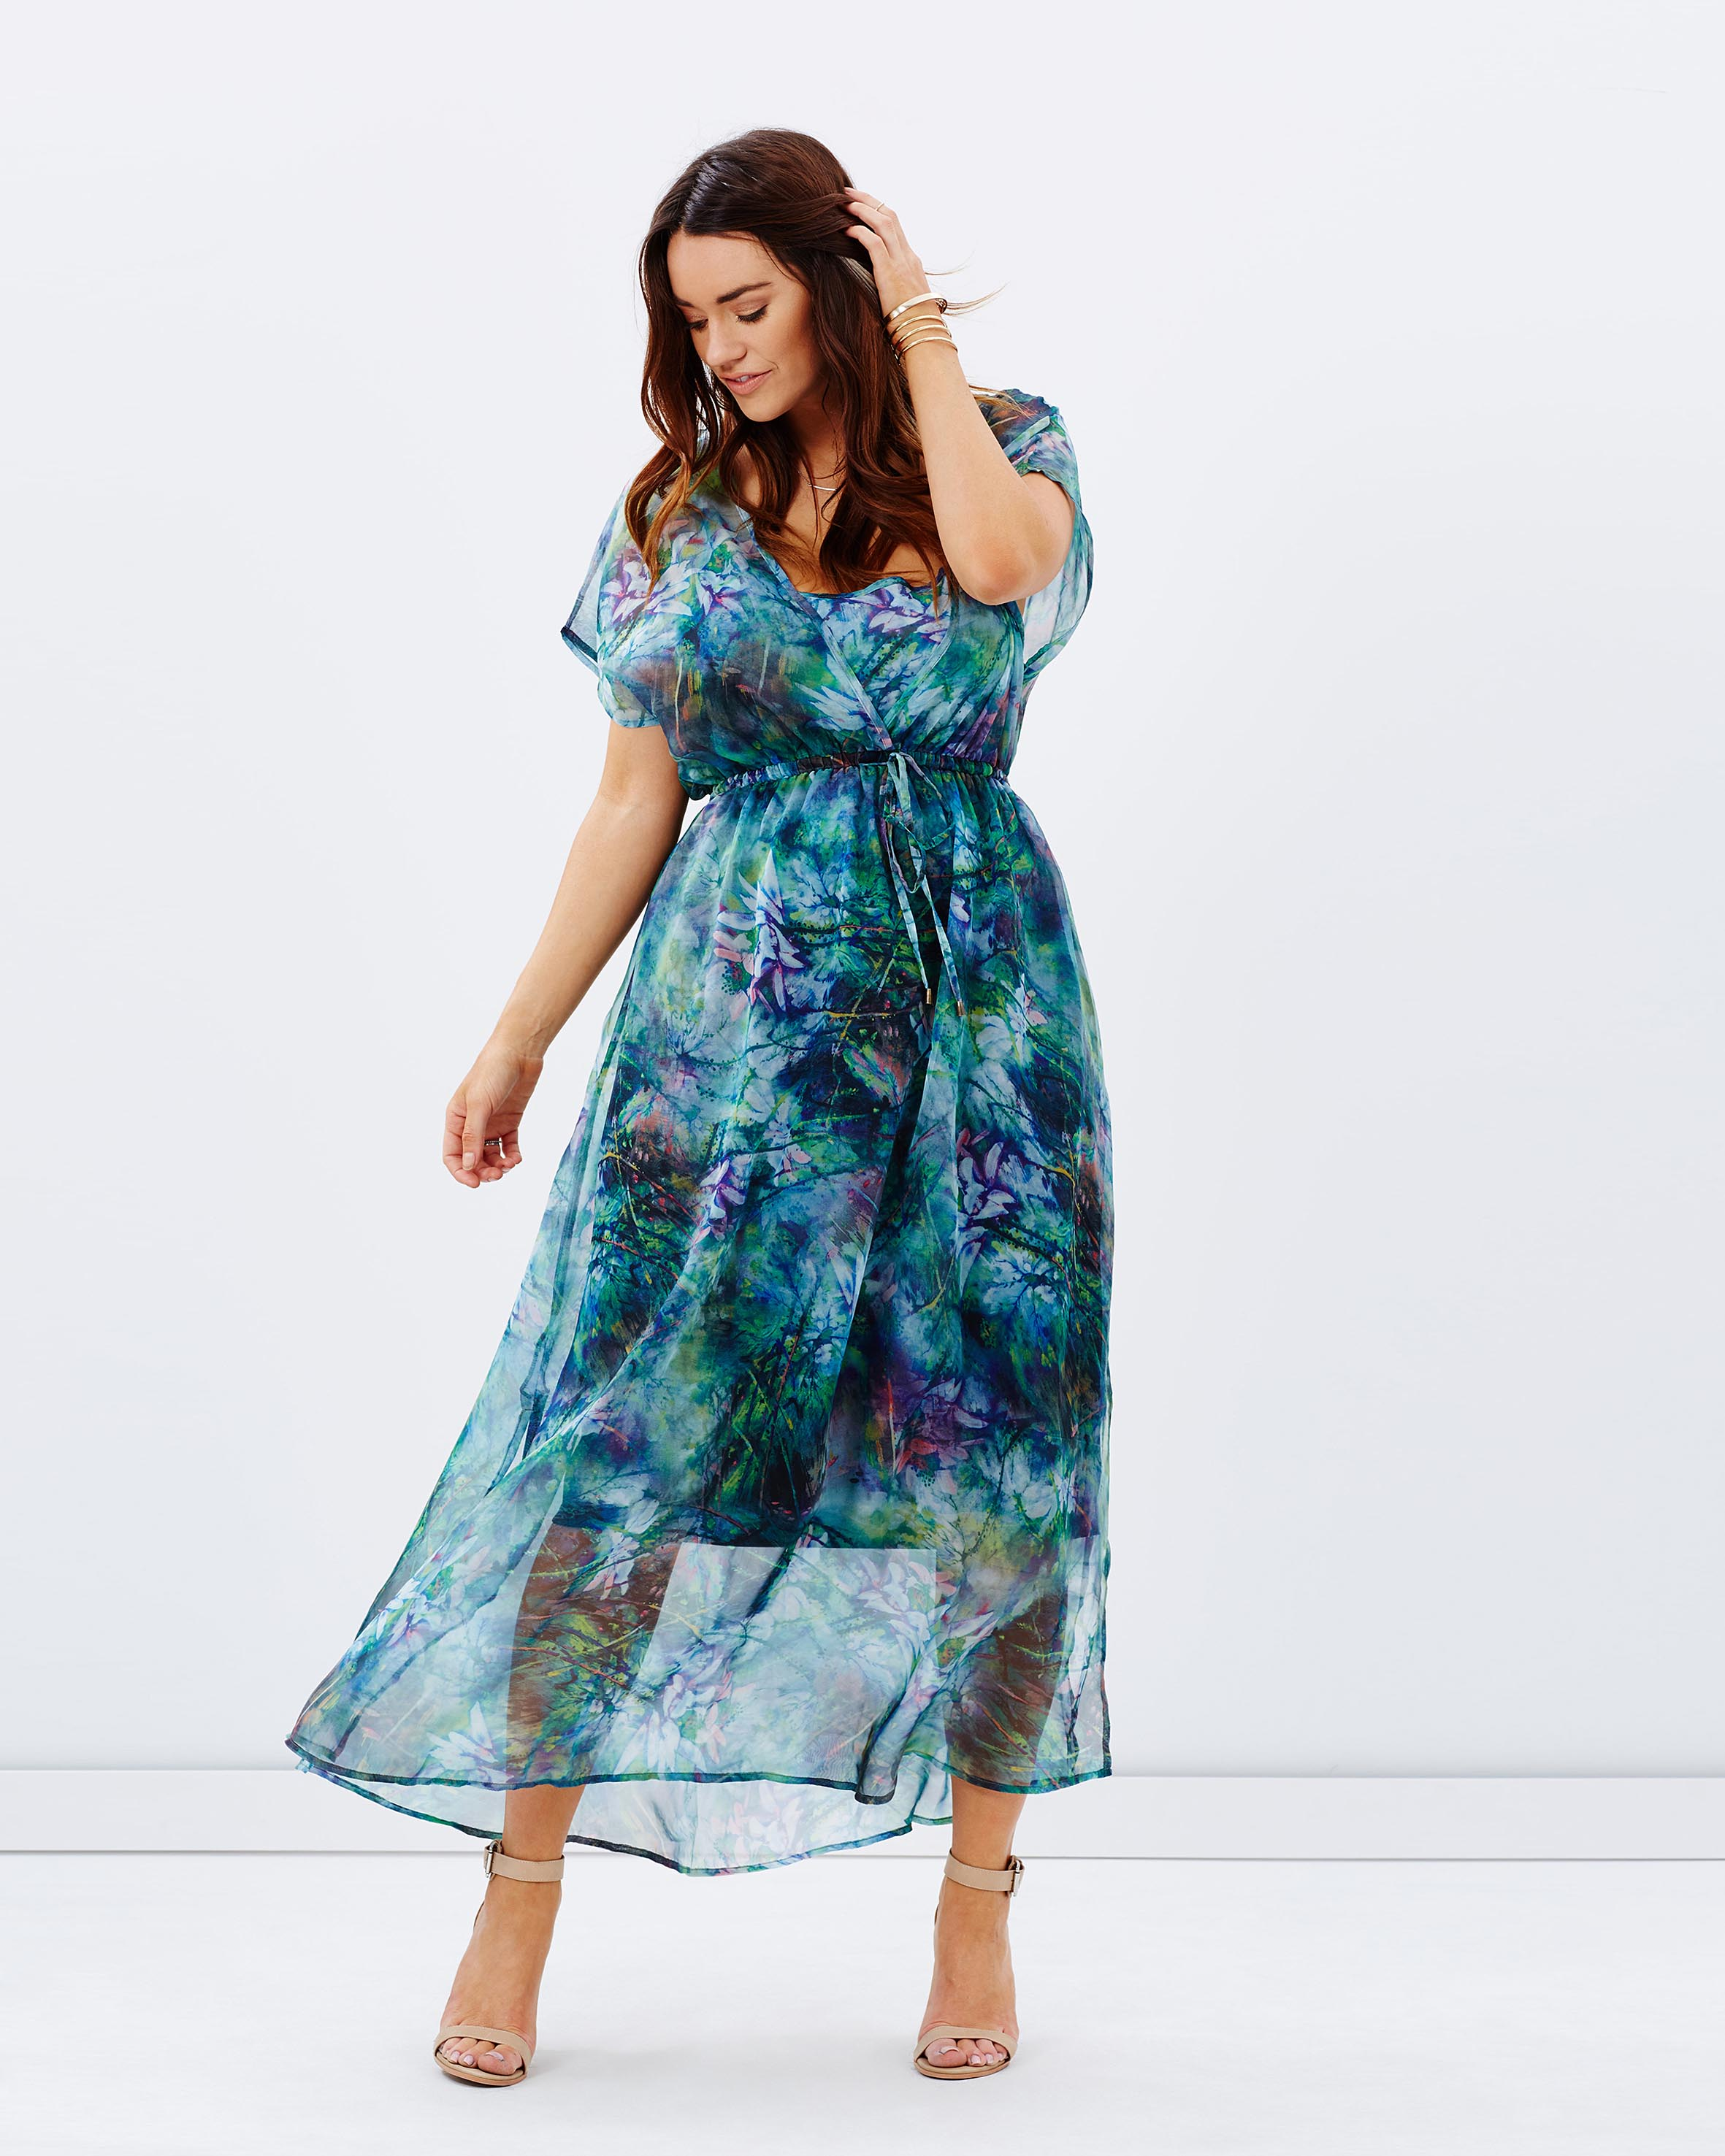 Plus size dresses for sale online